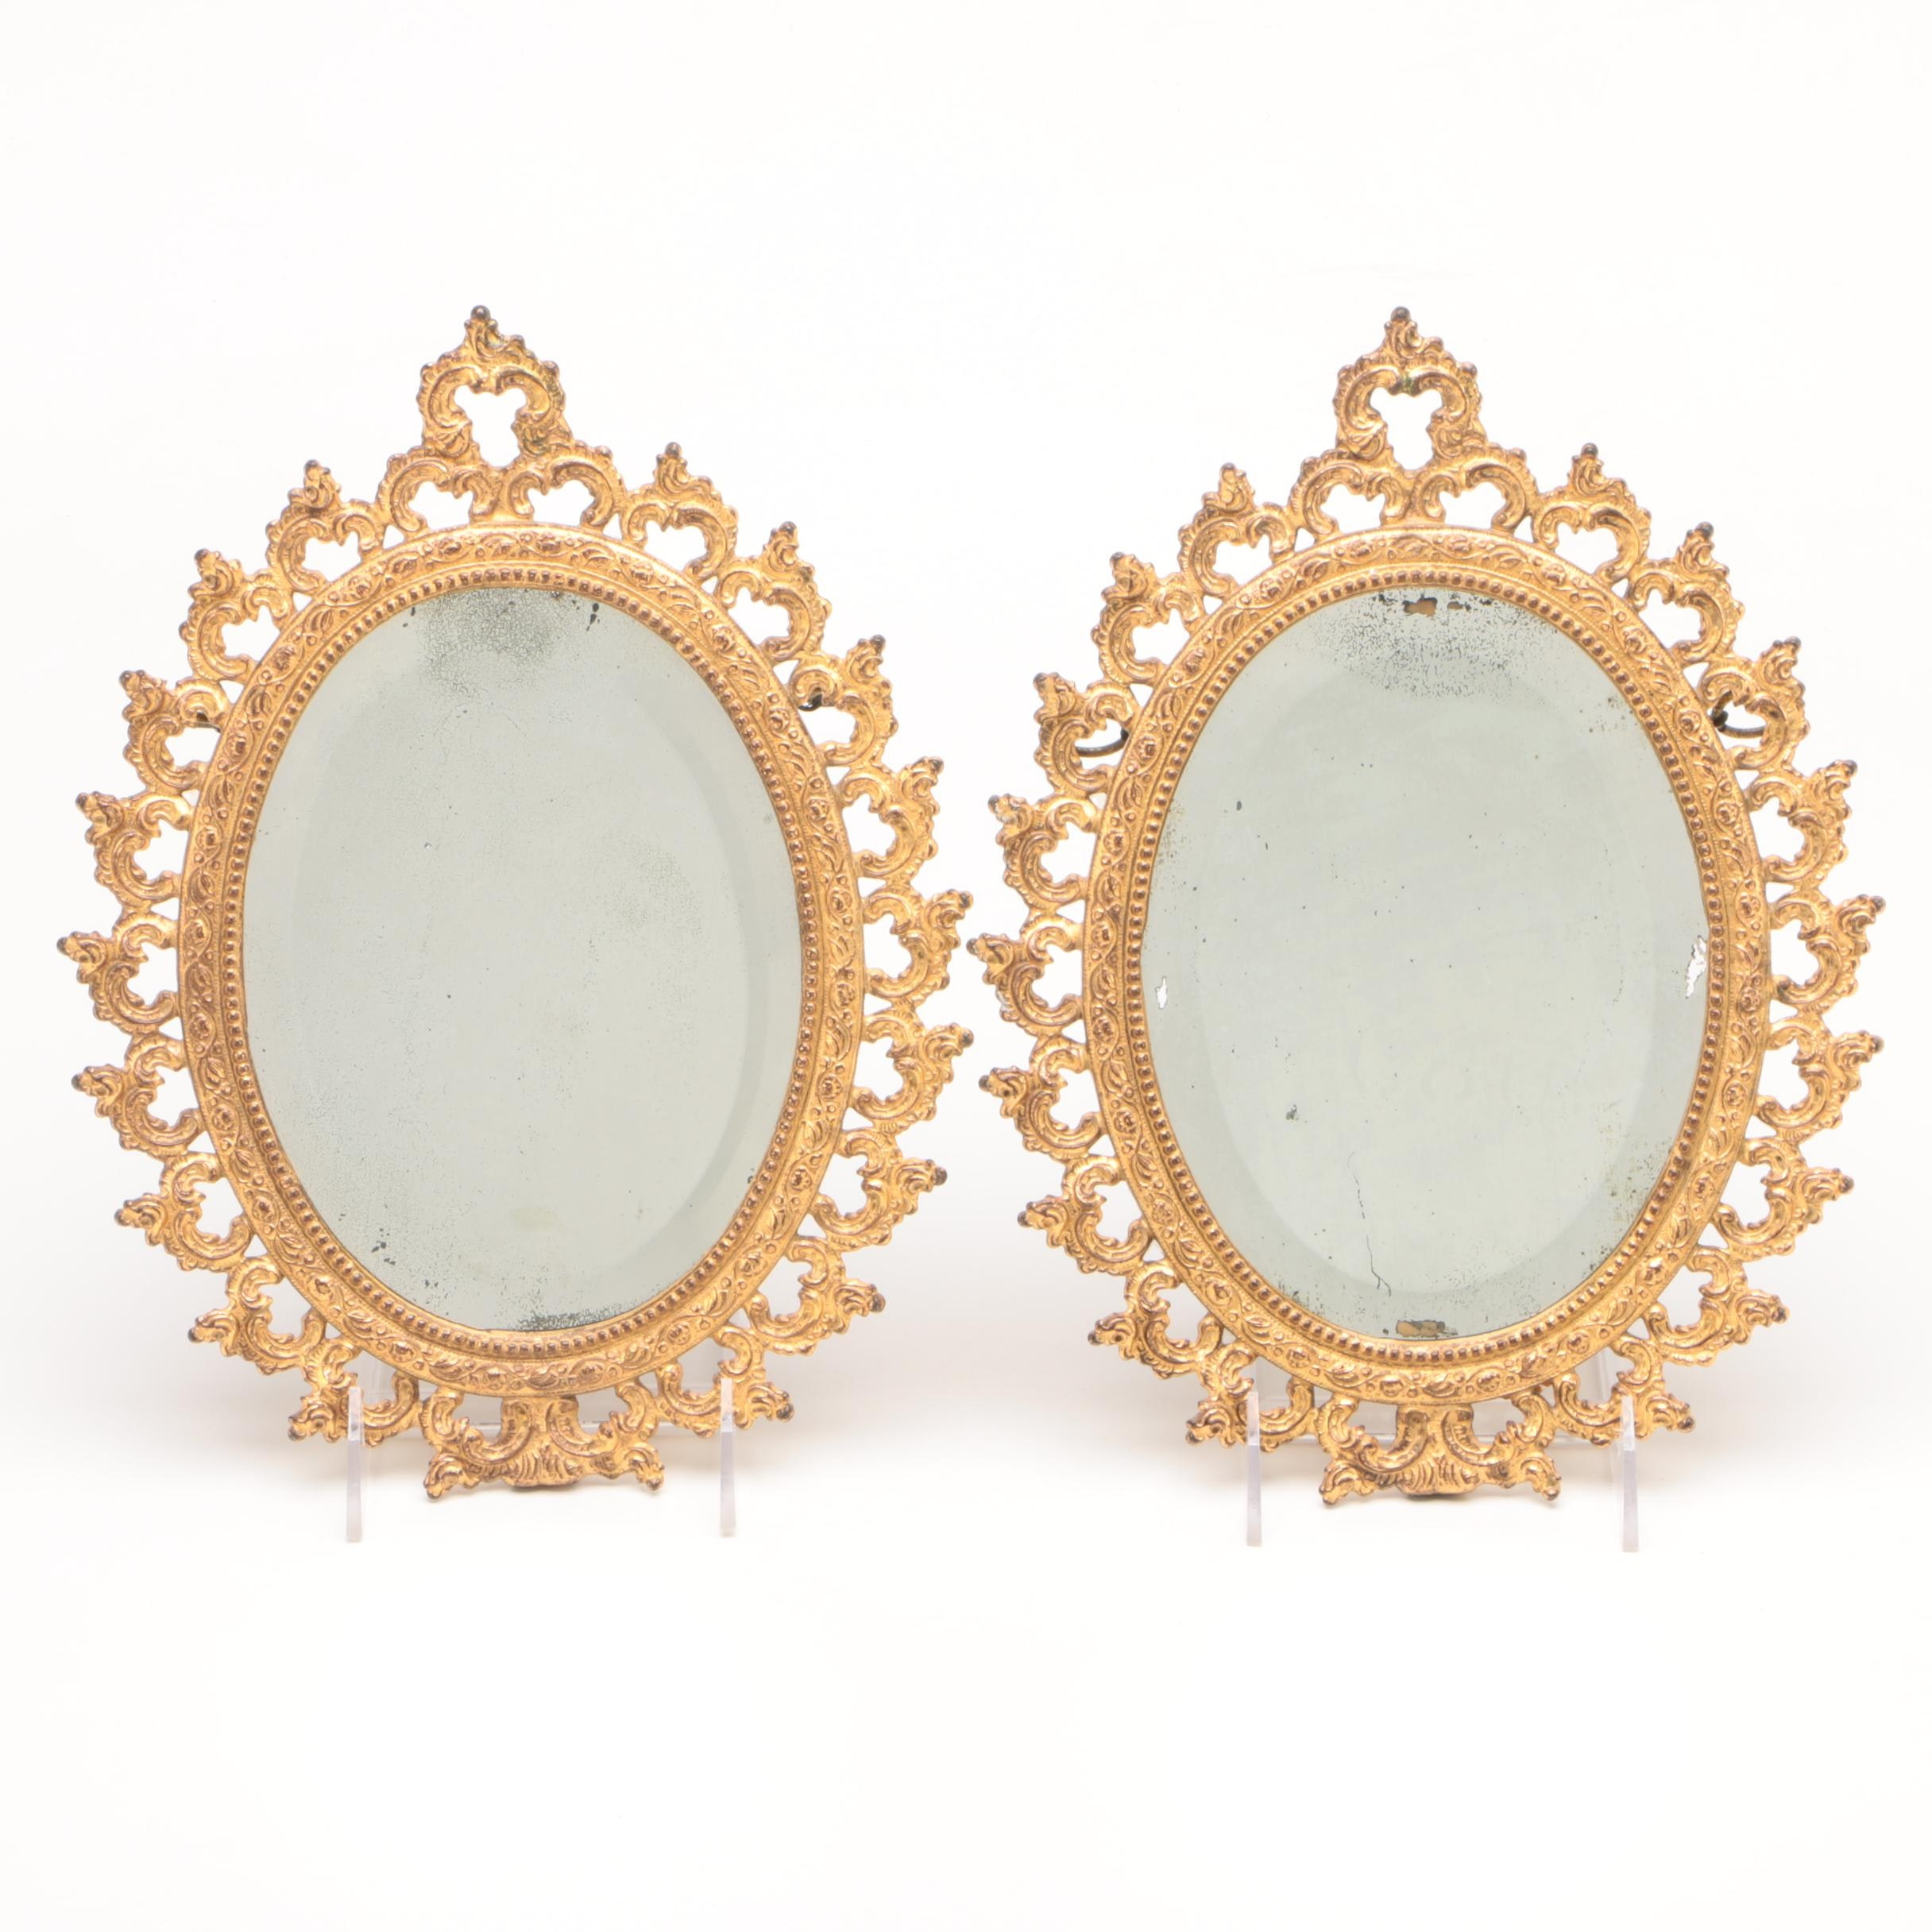 Pair of Baroque Revival Gilt Metal Oval Beveled Wall Mirrors, Late 19th Century